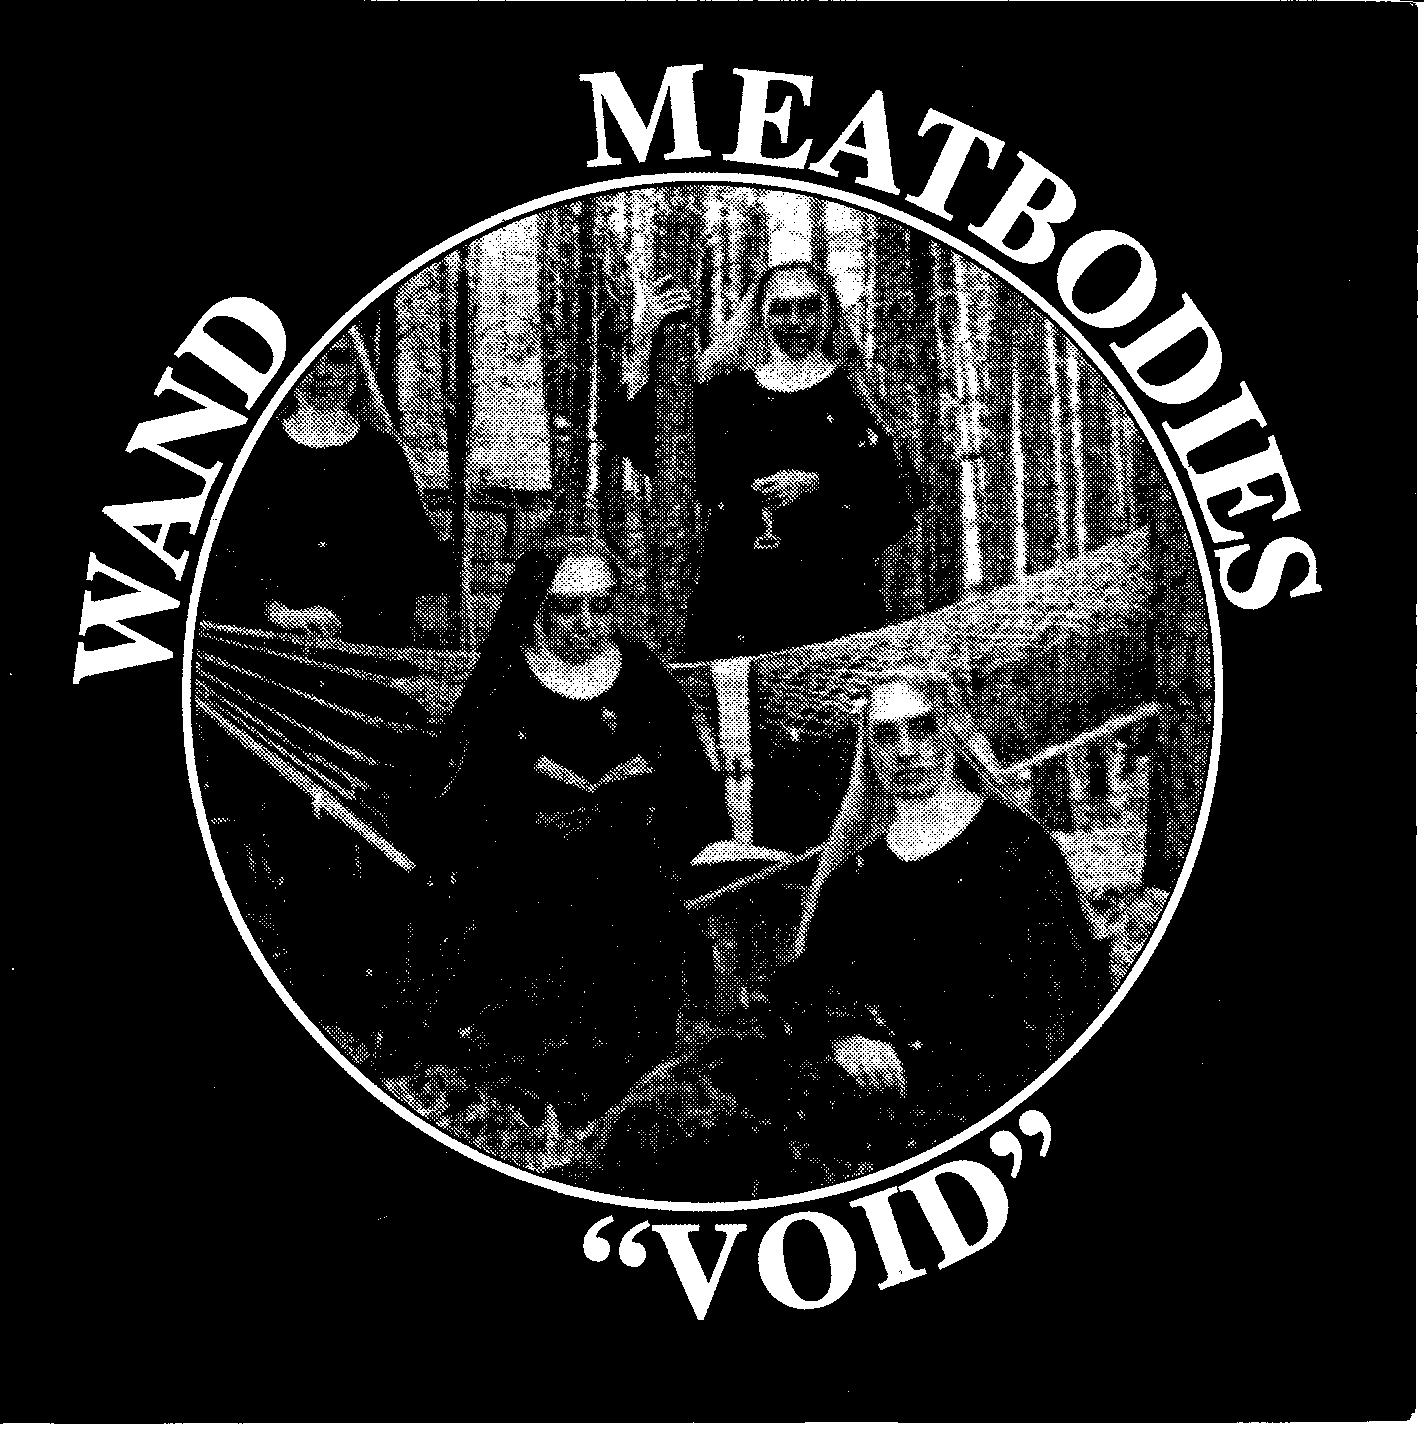 Meatbodies/Wand - Void 7""